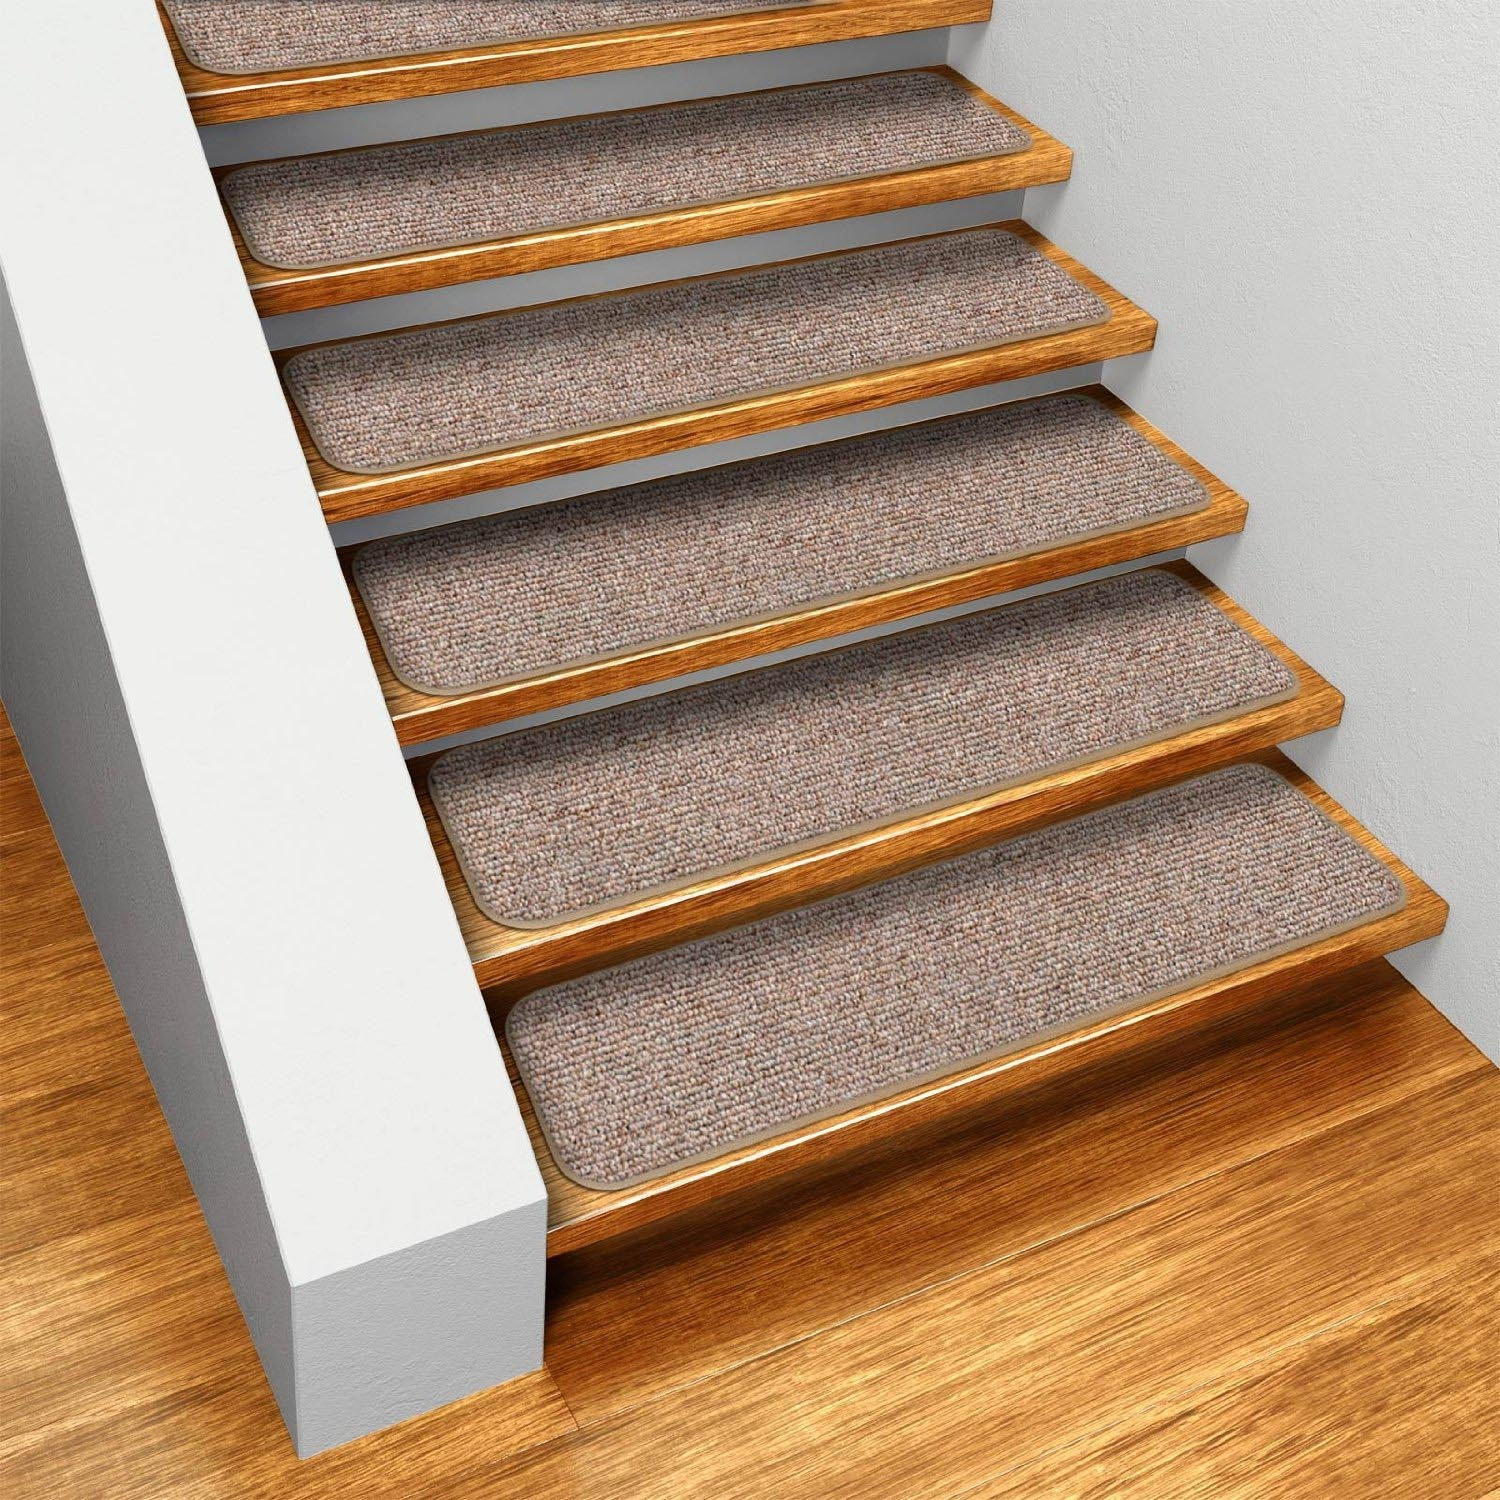 Stair Treads Carpet Tiles Best Decor Things For Stair Tread Carpet Tiles (Image 14 of 15)